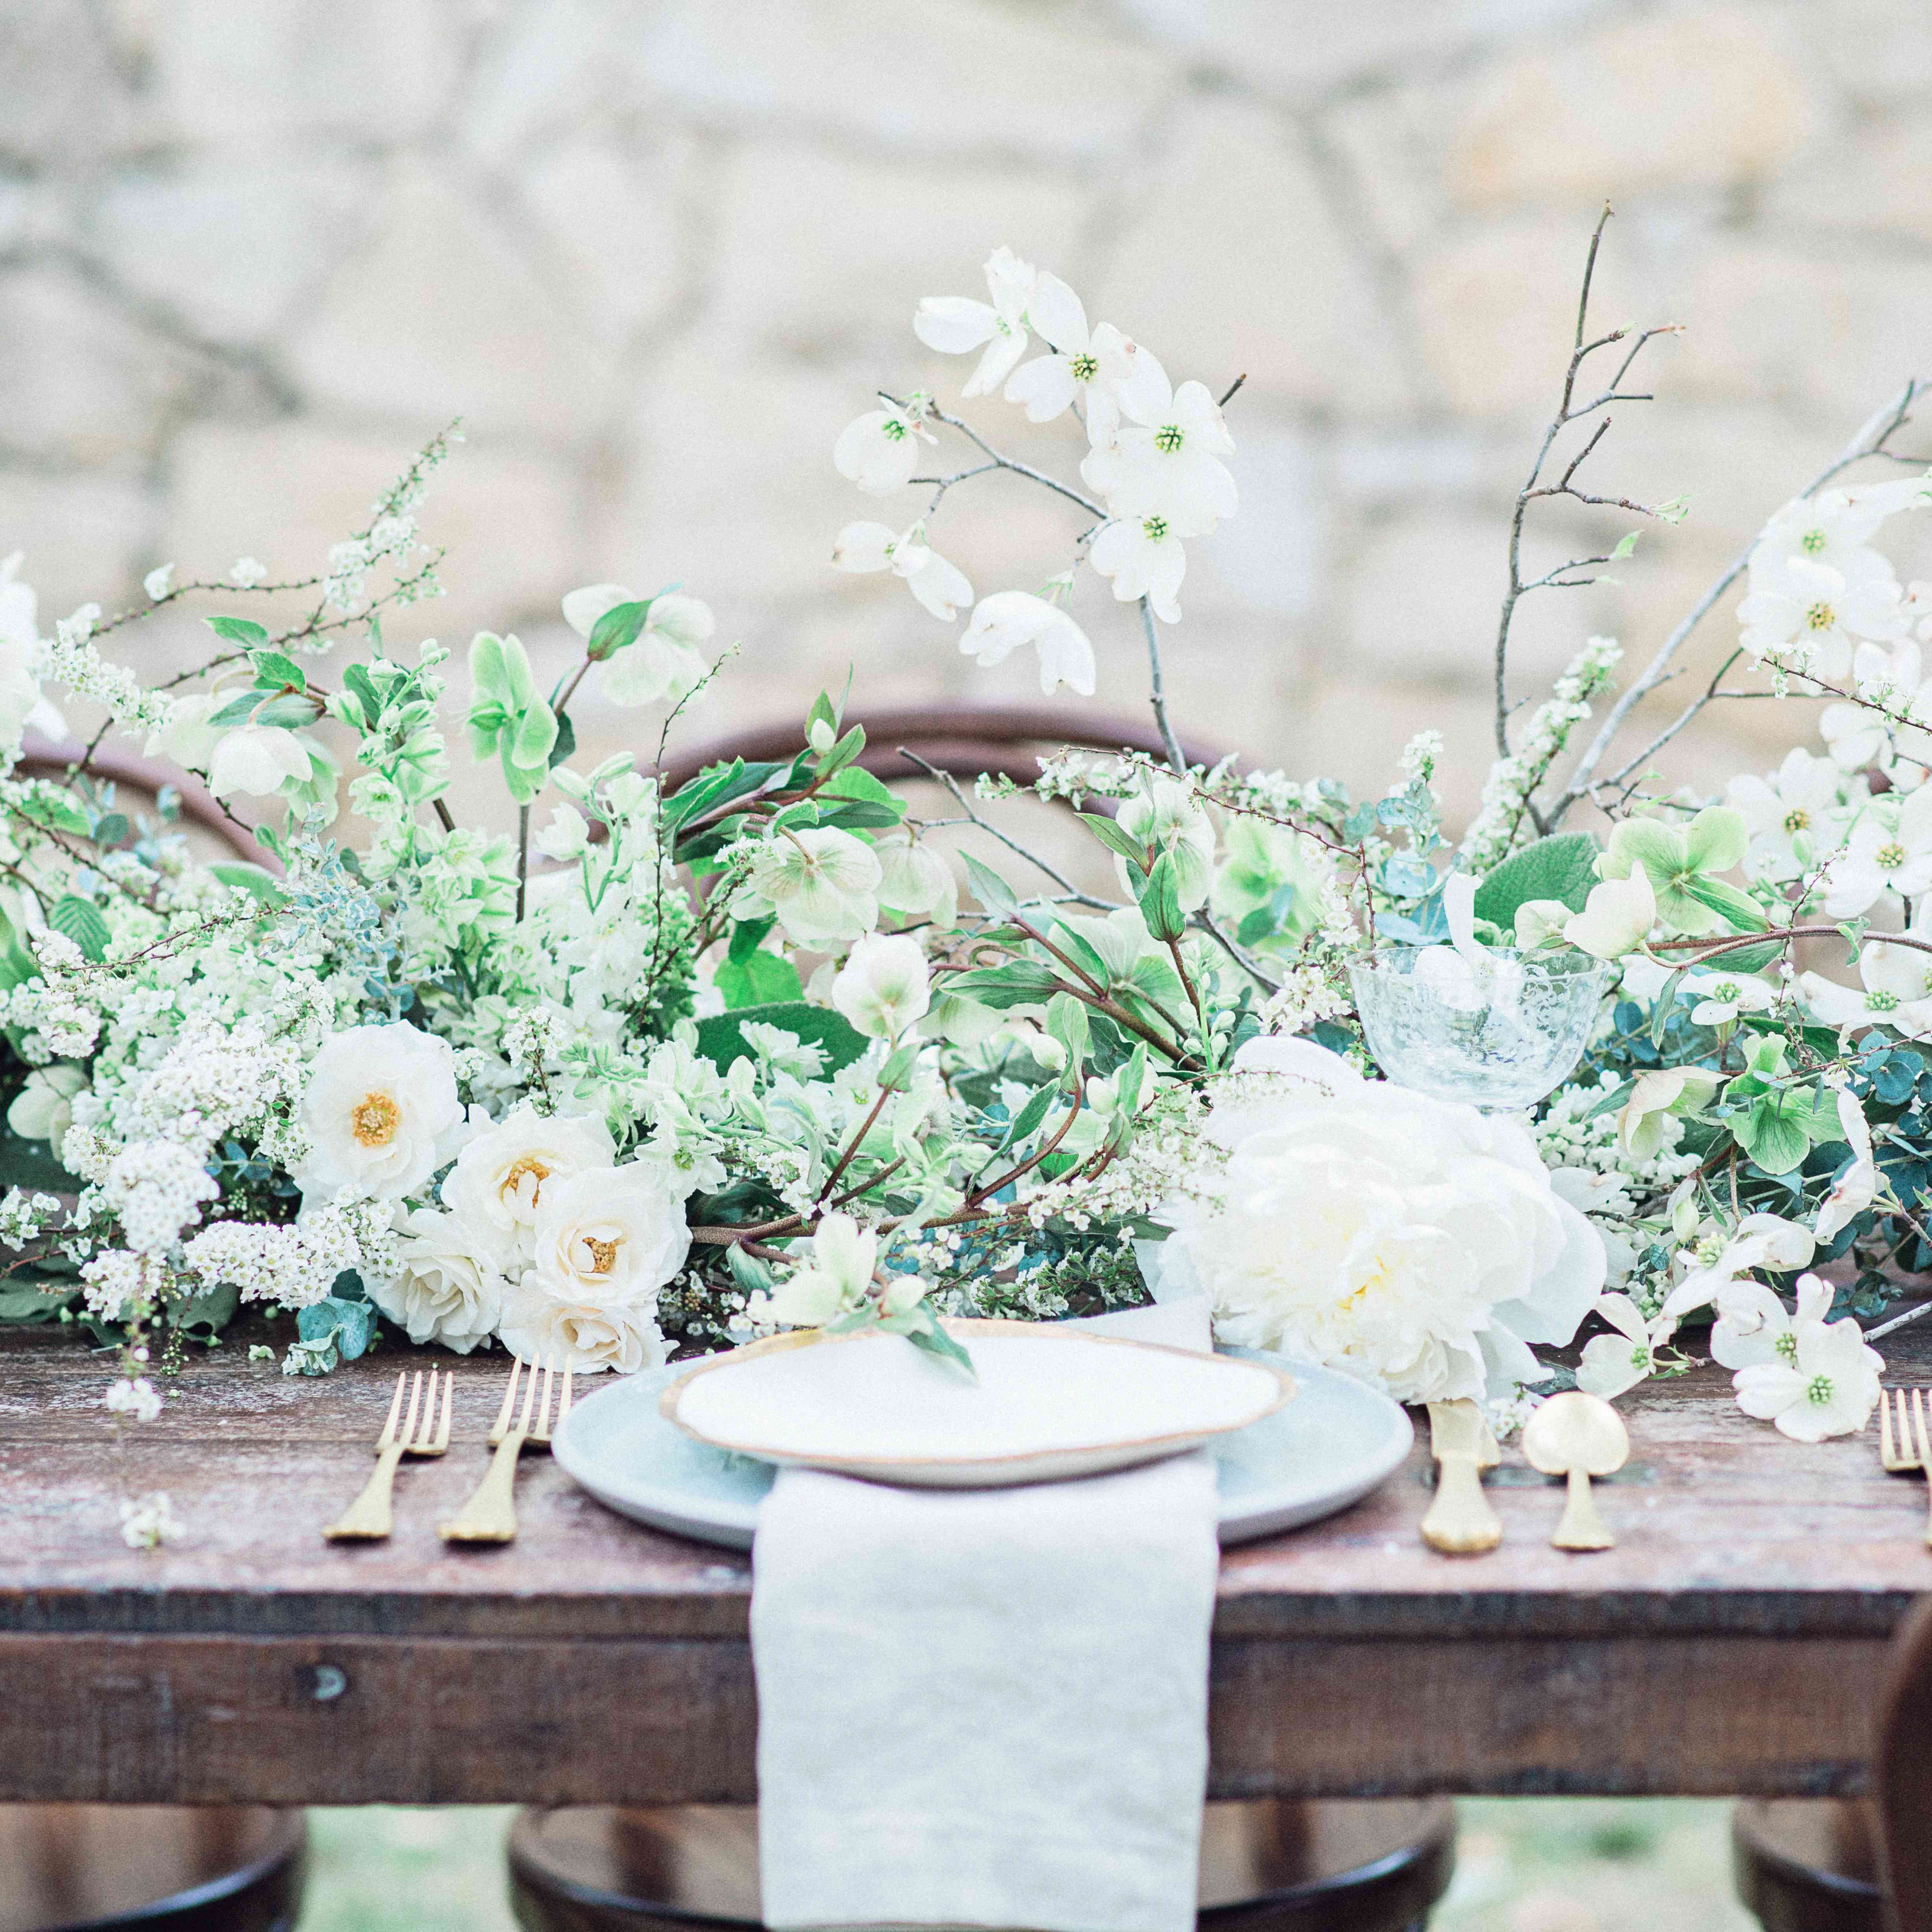 White and green floral garden with pale blue table accents